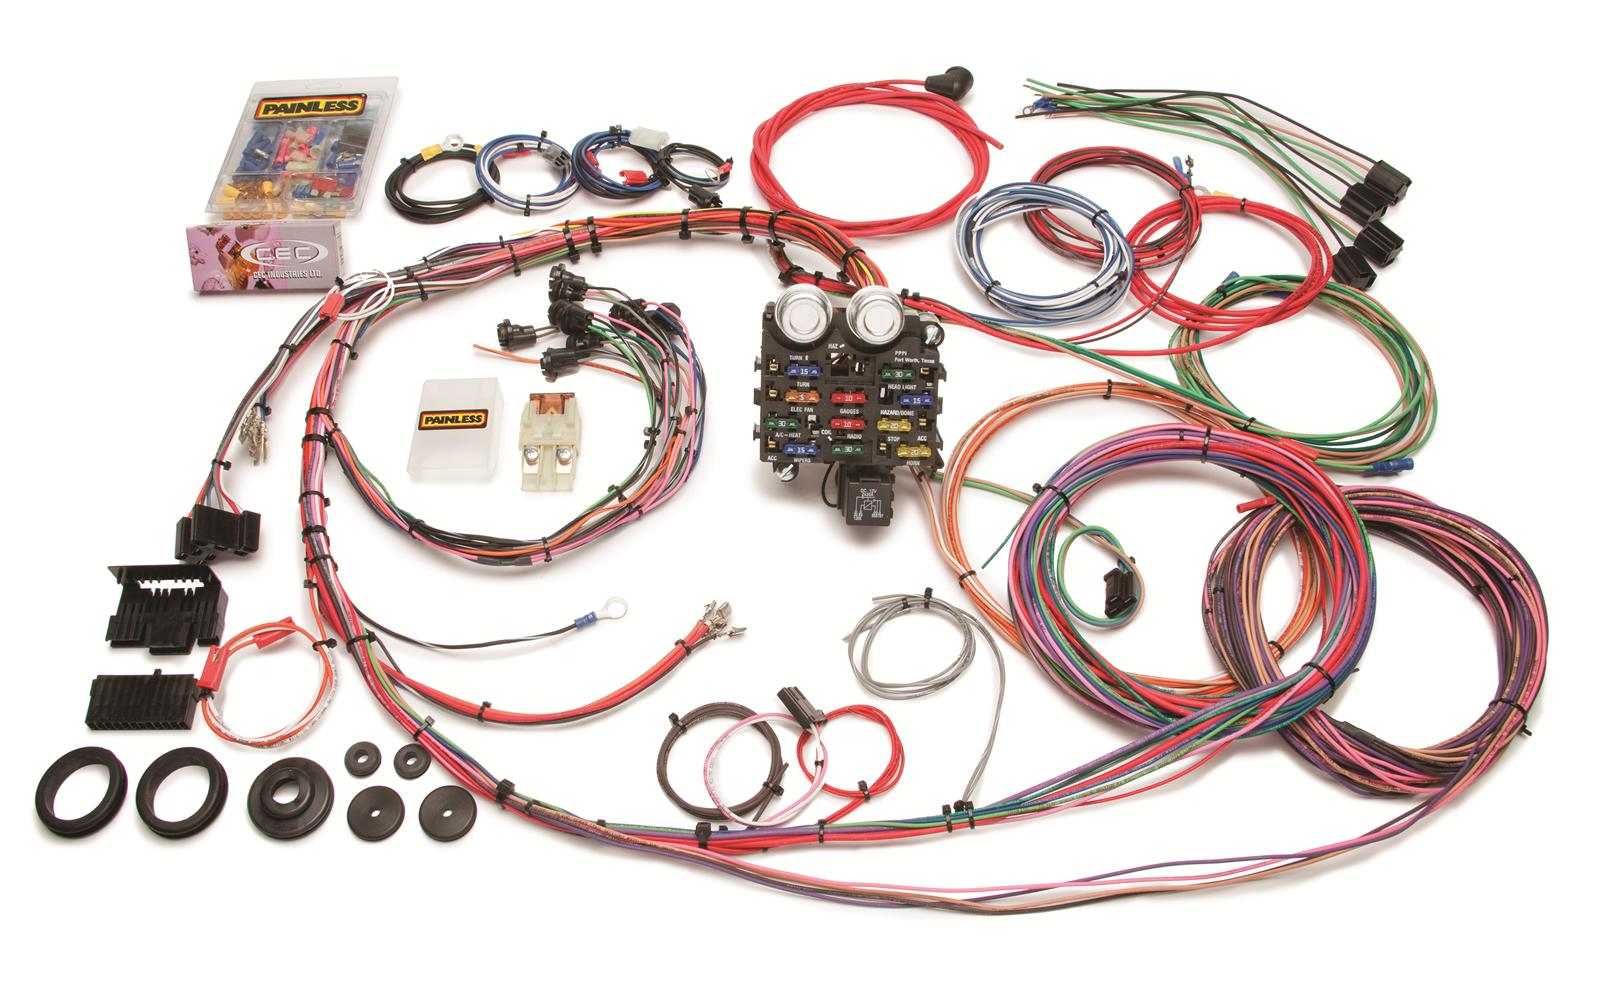 prf 10112_xl painless performance 19 circuit gmc chevy truck harnesses 10112 1985 chevy truck wiring harness at eliteediting.co